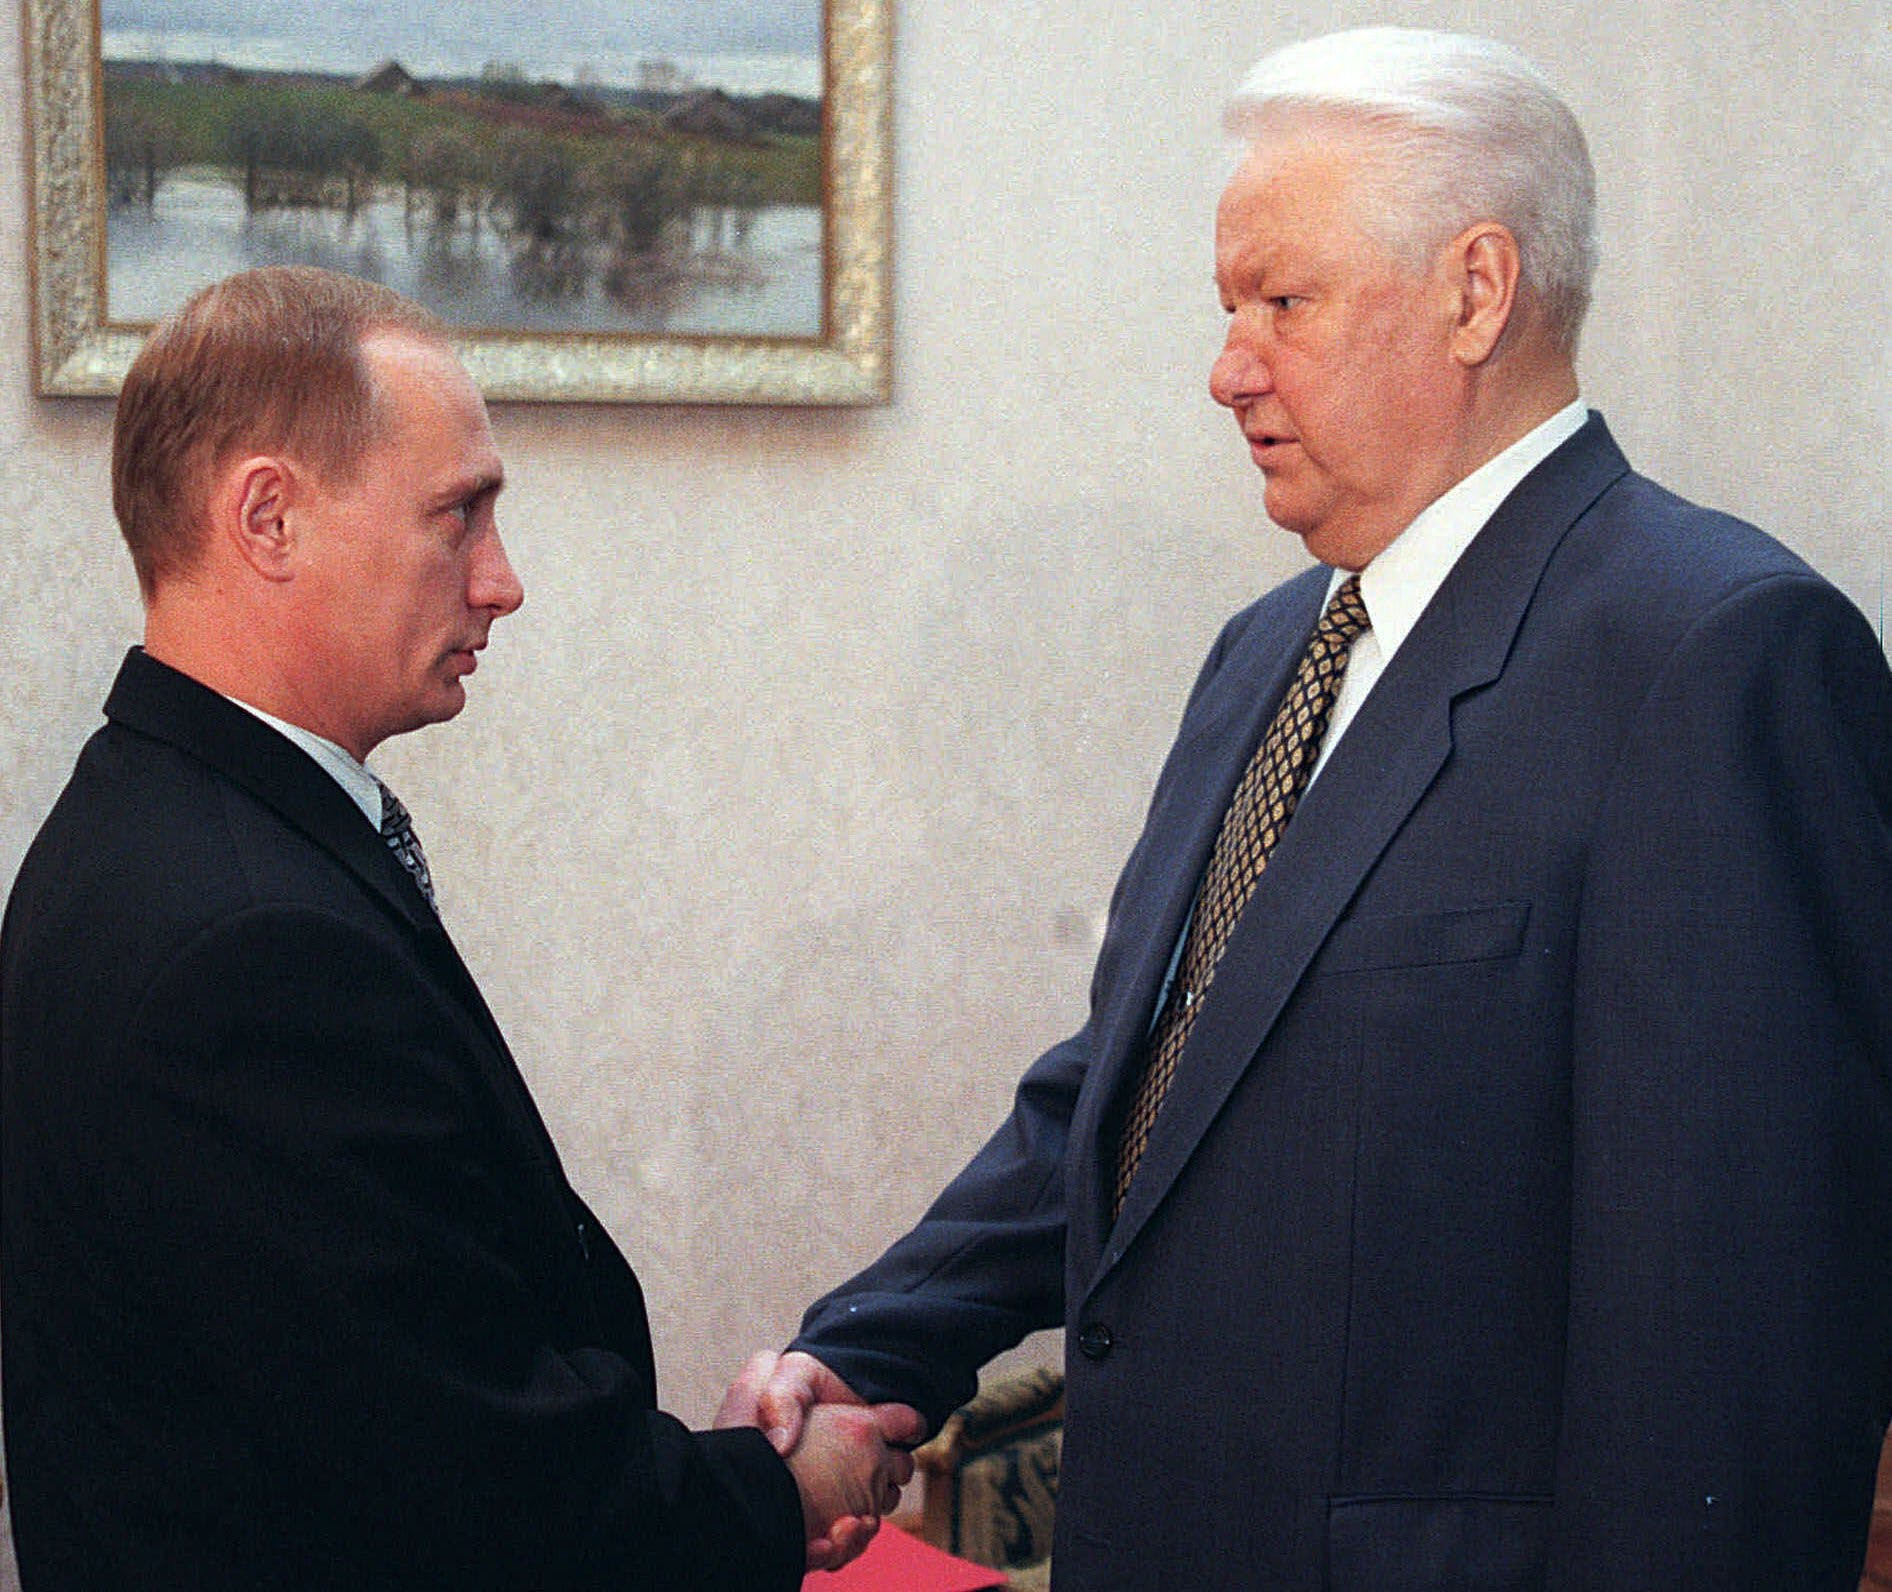 President Boris Yeltsin shakes hands with Vladimir Putin, the head of the Federal Security Service, at a country residence near Moscow, Friday, November 20, 1998. The Kremlin waffled Friday on whether Boris Yeltsin will visit India next month, two days after reviving speculation about his ailing health by saying he had canceled the trip. (AP Photo/ITAR-TASS)